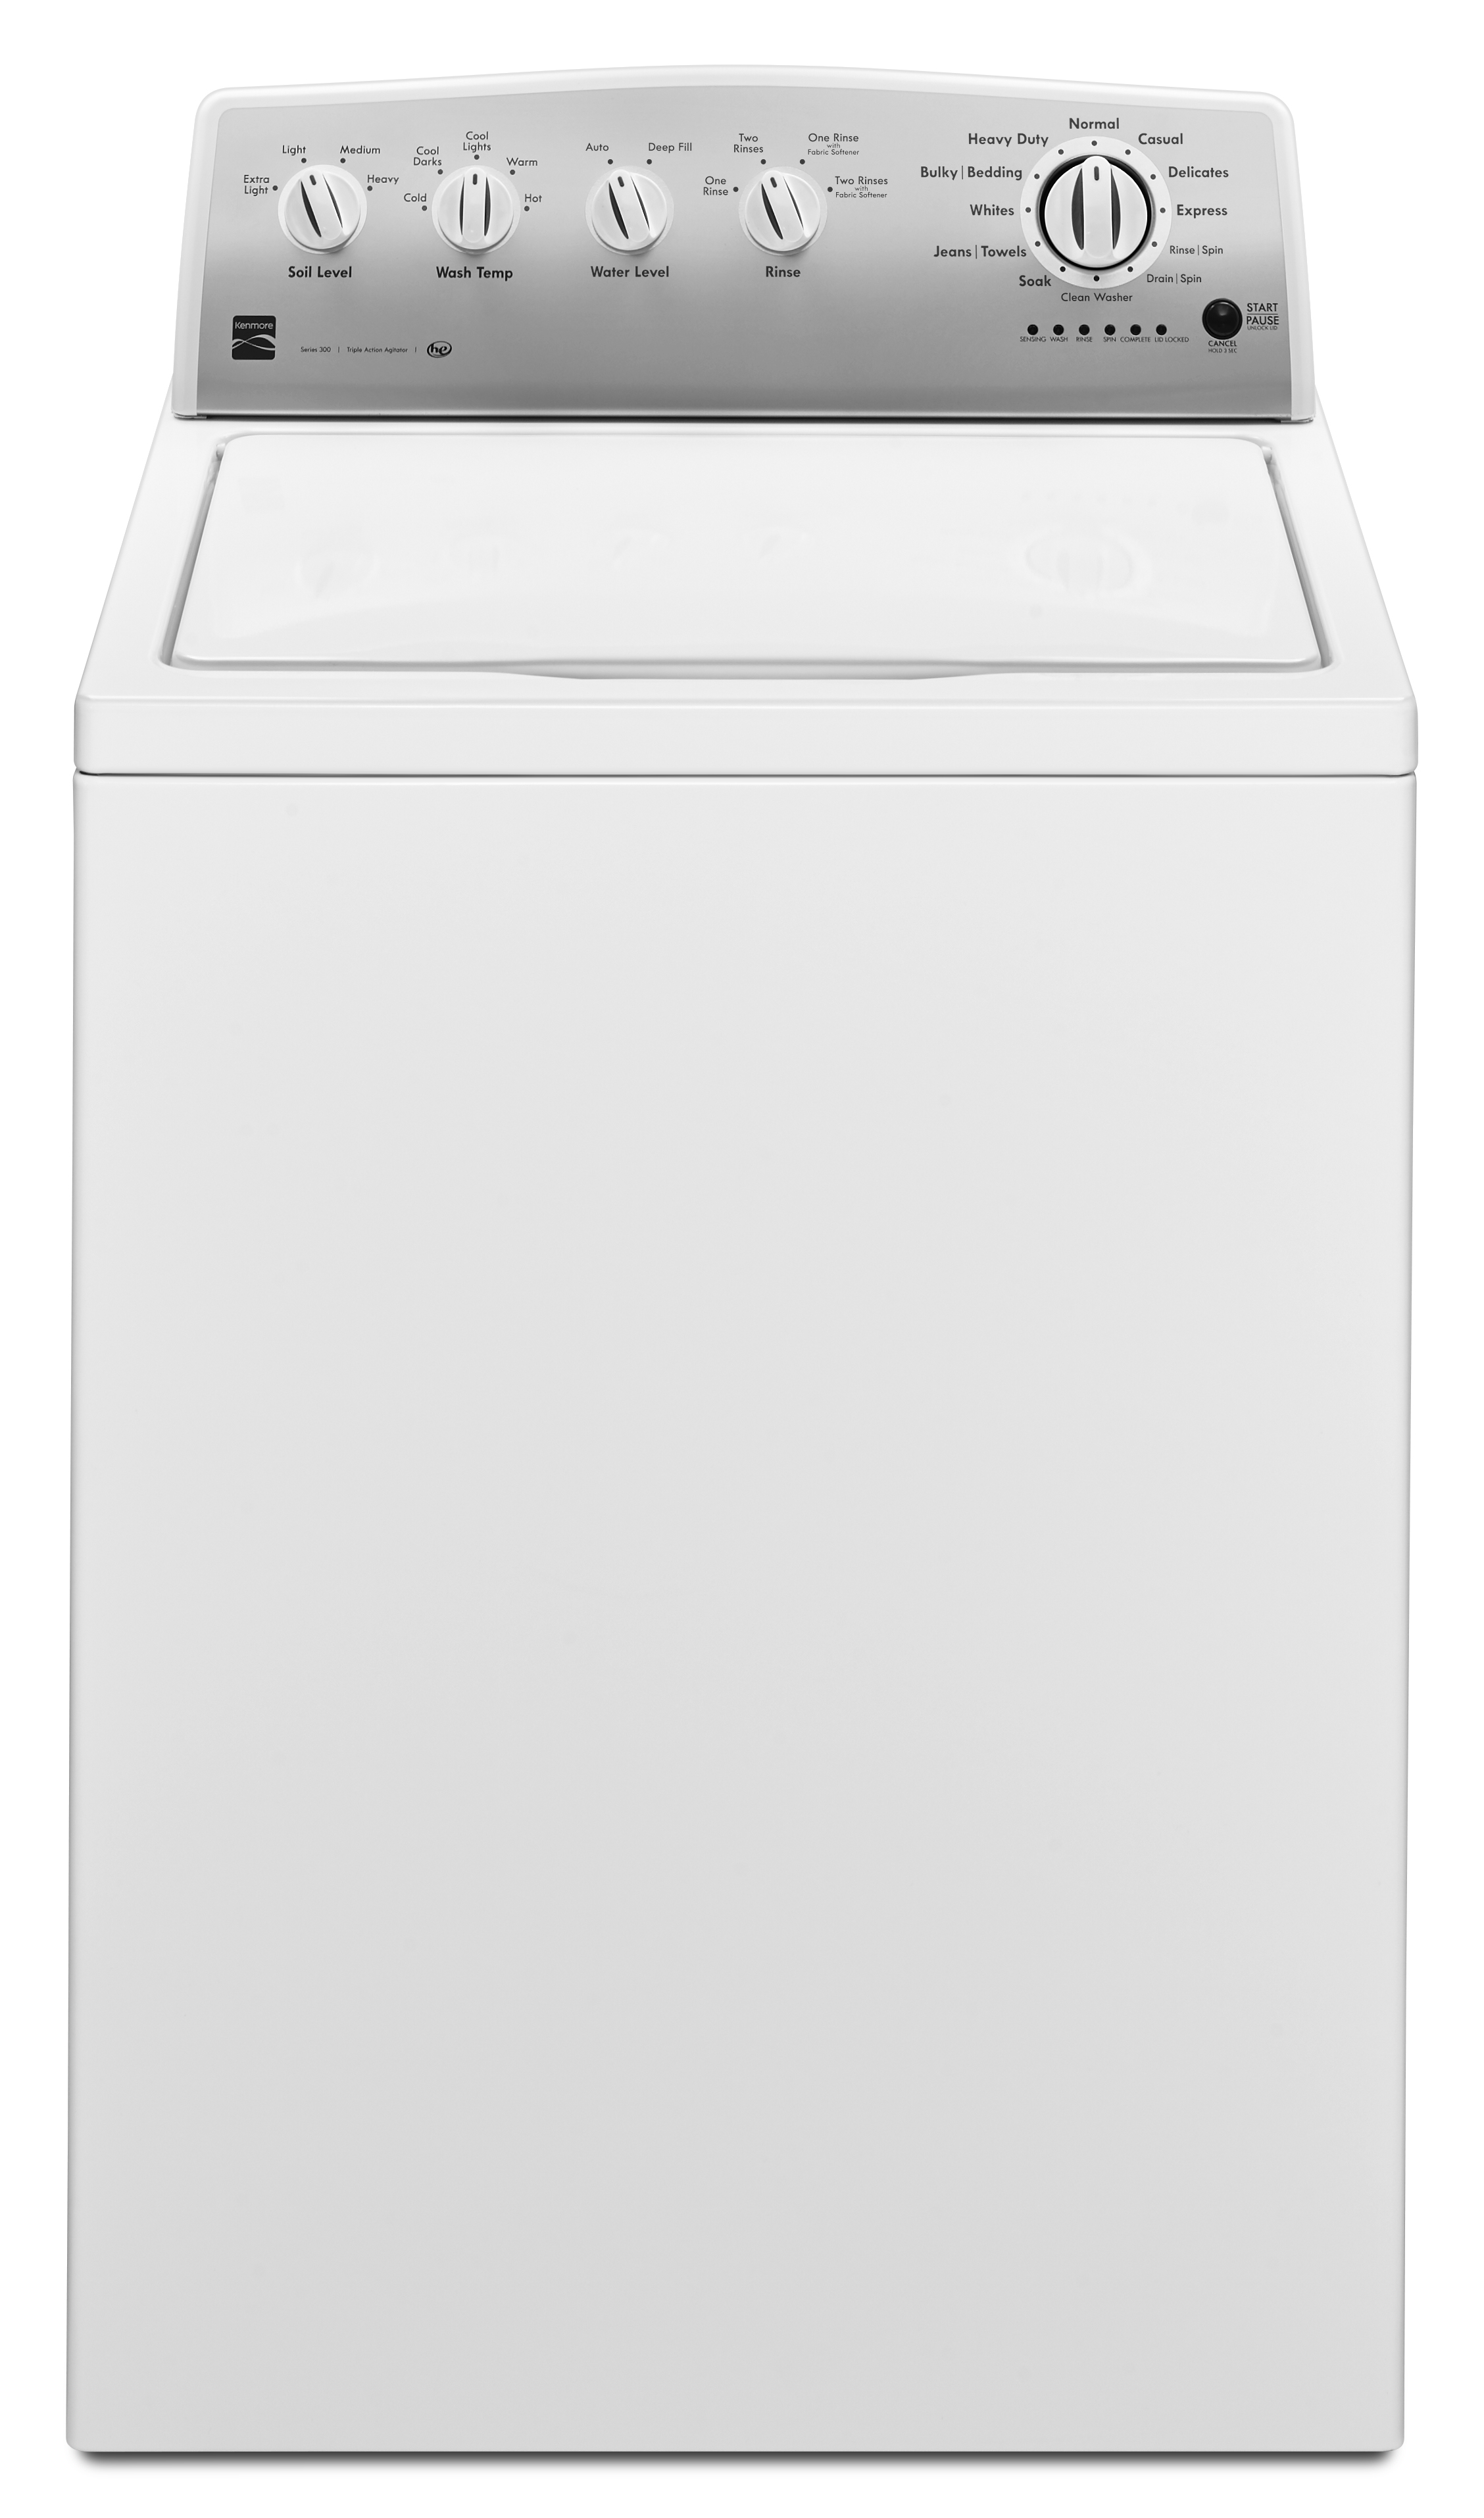 22242-3-6-cu-ft-Agitator-Top-Load-Washer-White